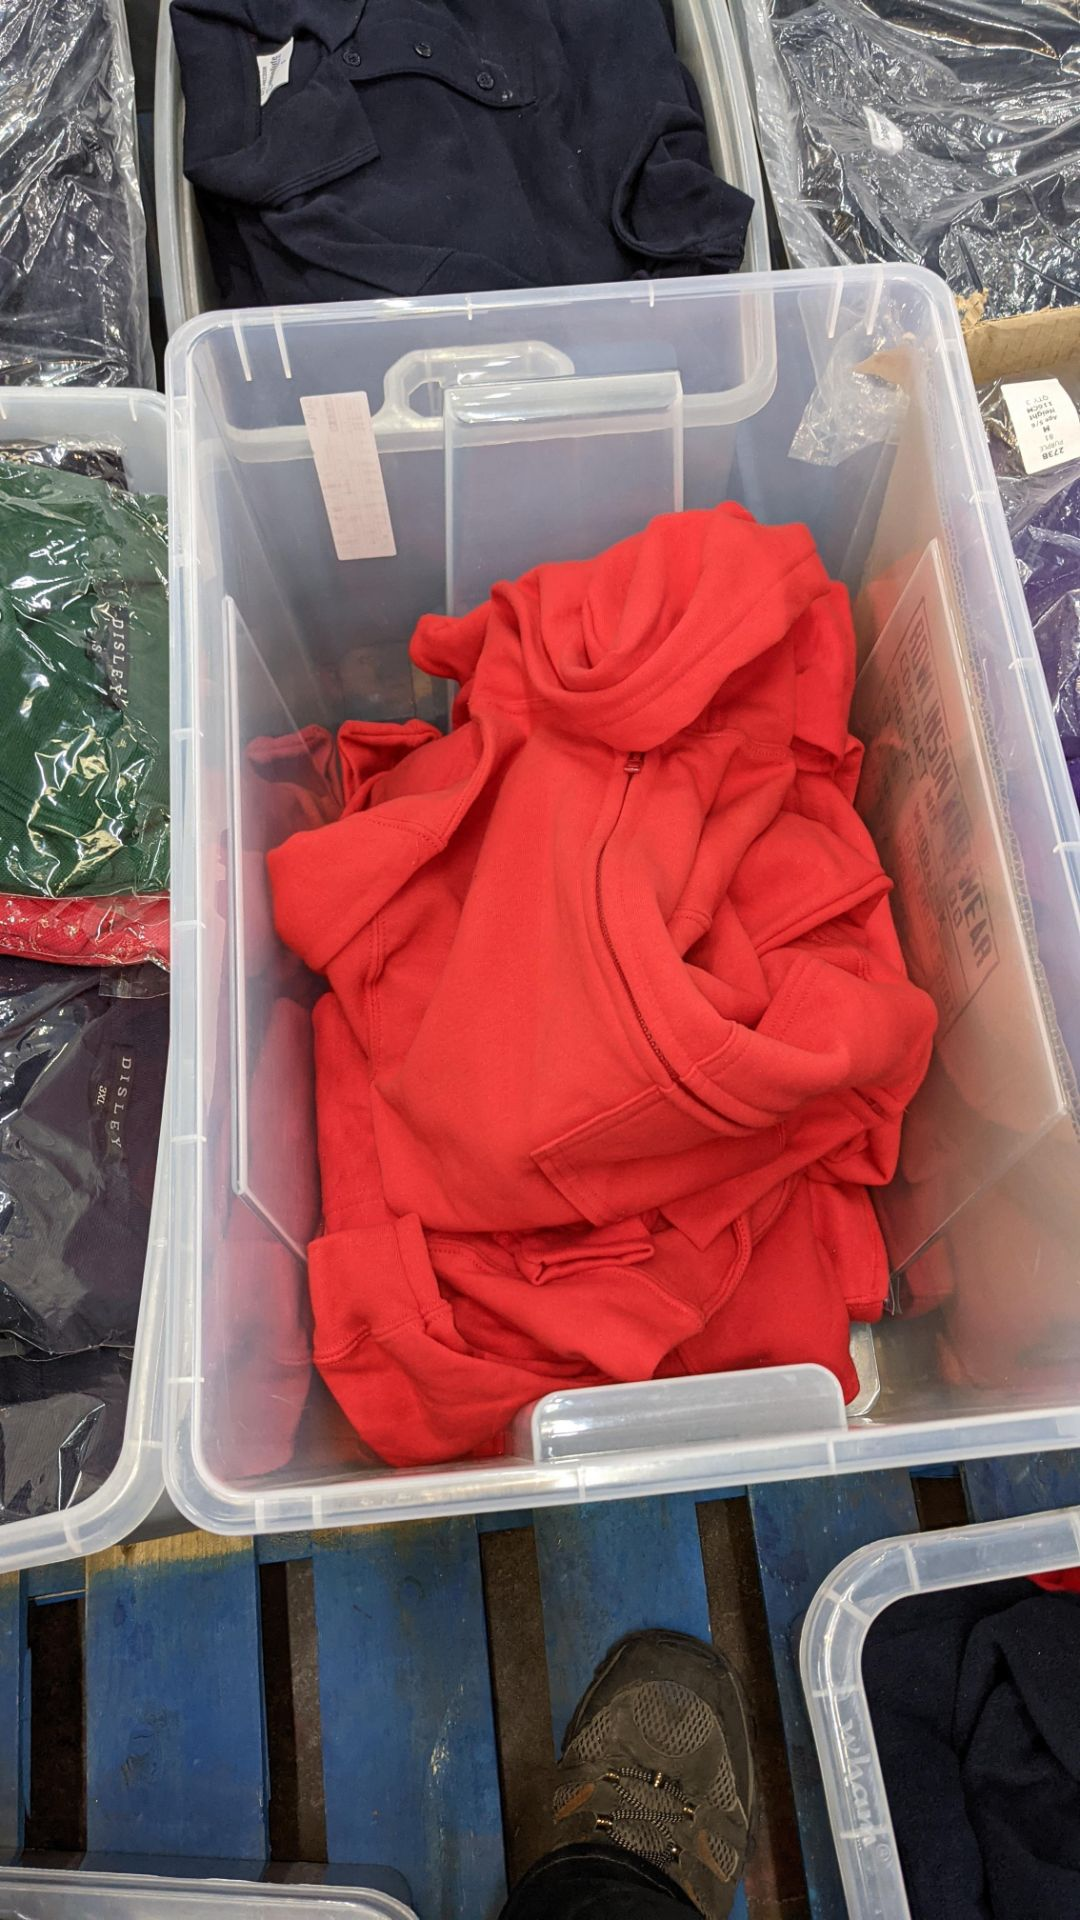 Approx 7 off children's zip up red hooded tops - the contents of 1 large crate. NB crate excluded - Image 4 of 4